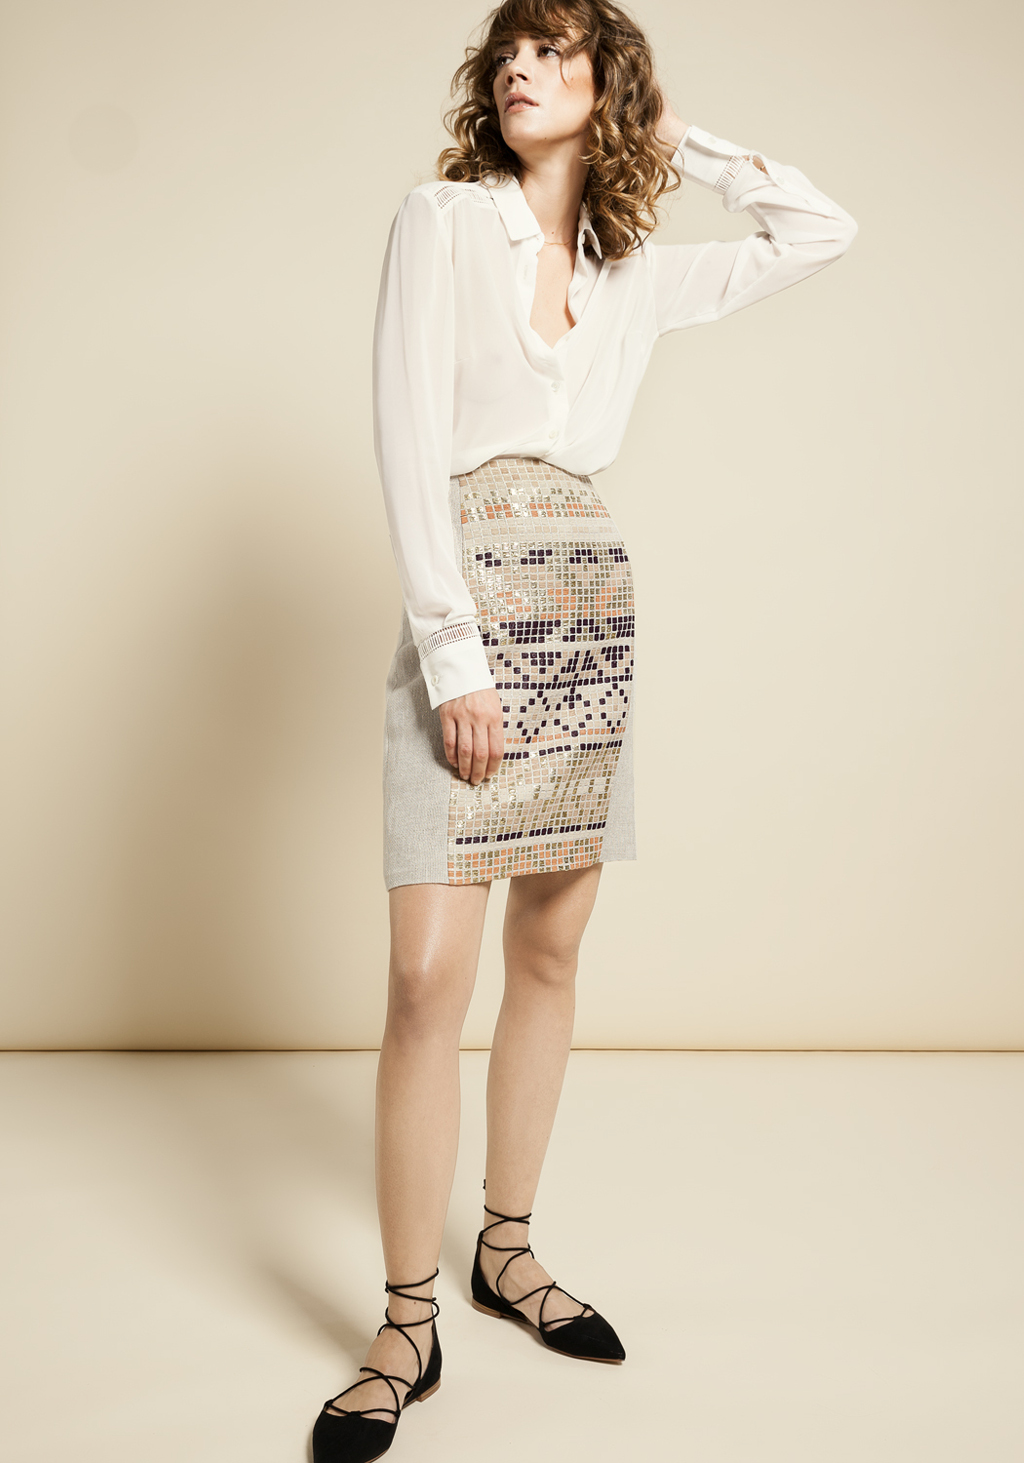 Ethnic motif skirt - White silk shirt with timmings